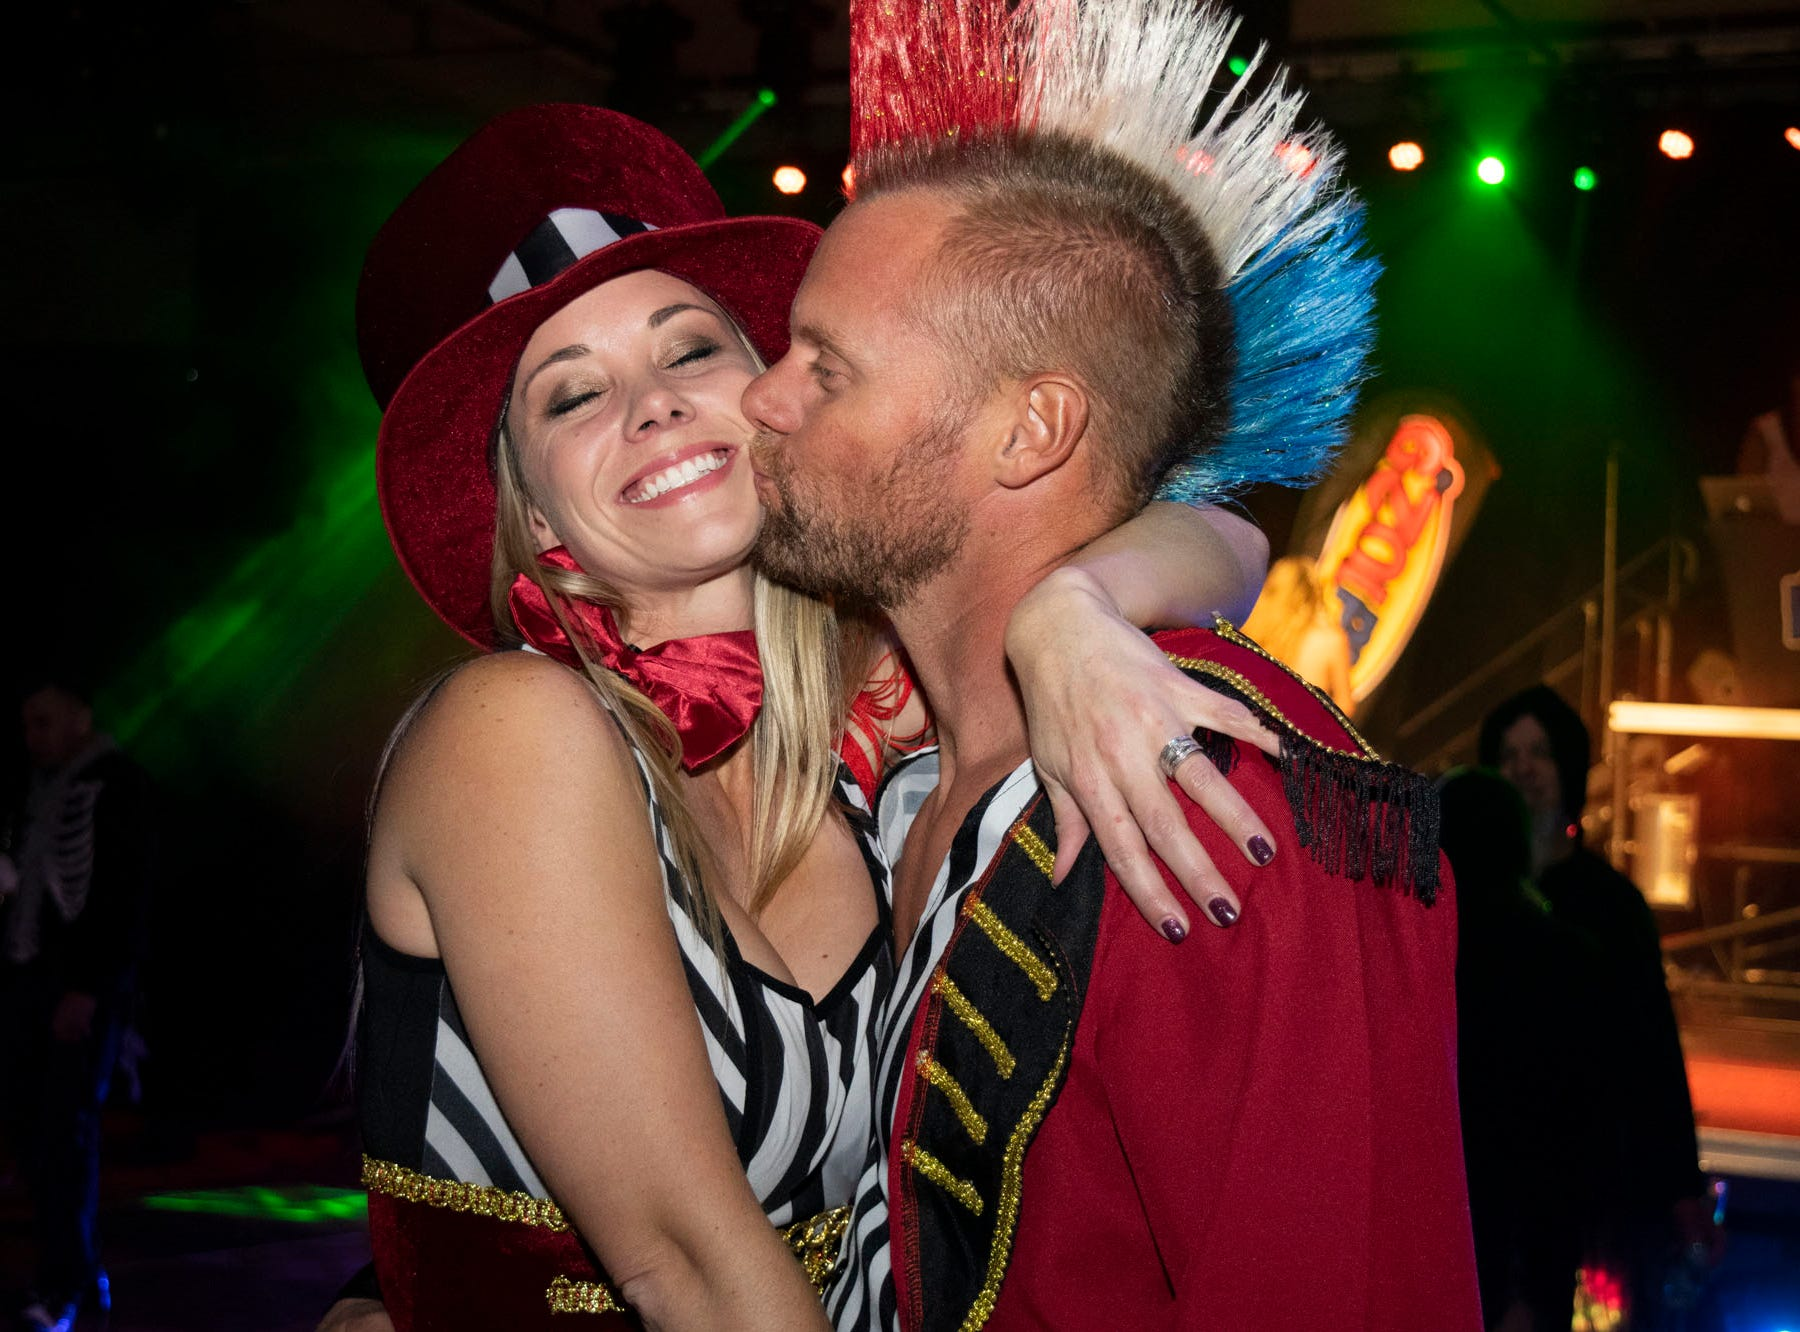 Heather and Tim Hinkle attend the Wild Erotic Ball on Friday, Oct. 26, 2018, inside the Silver Legacy Casino. Reno, Nev.